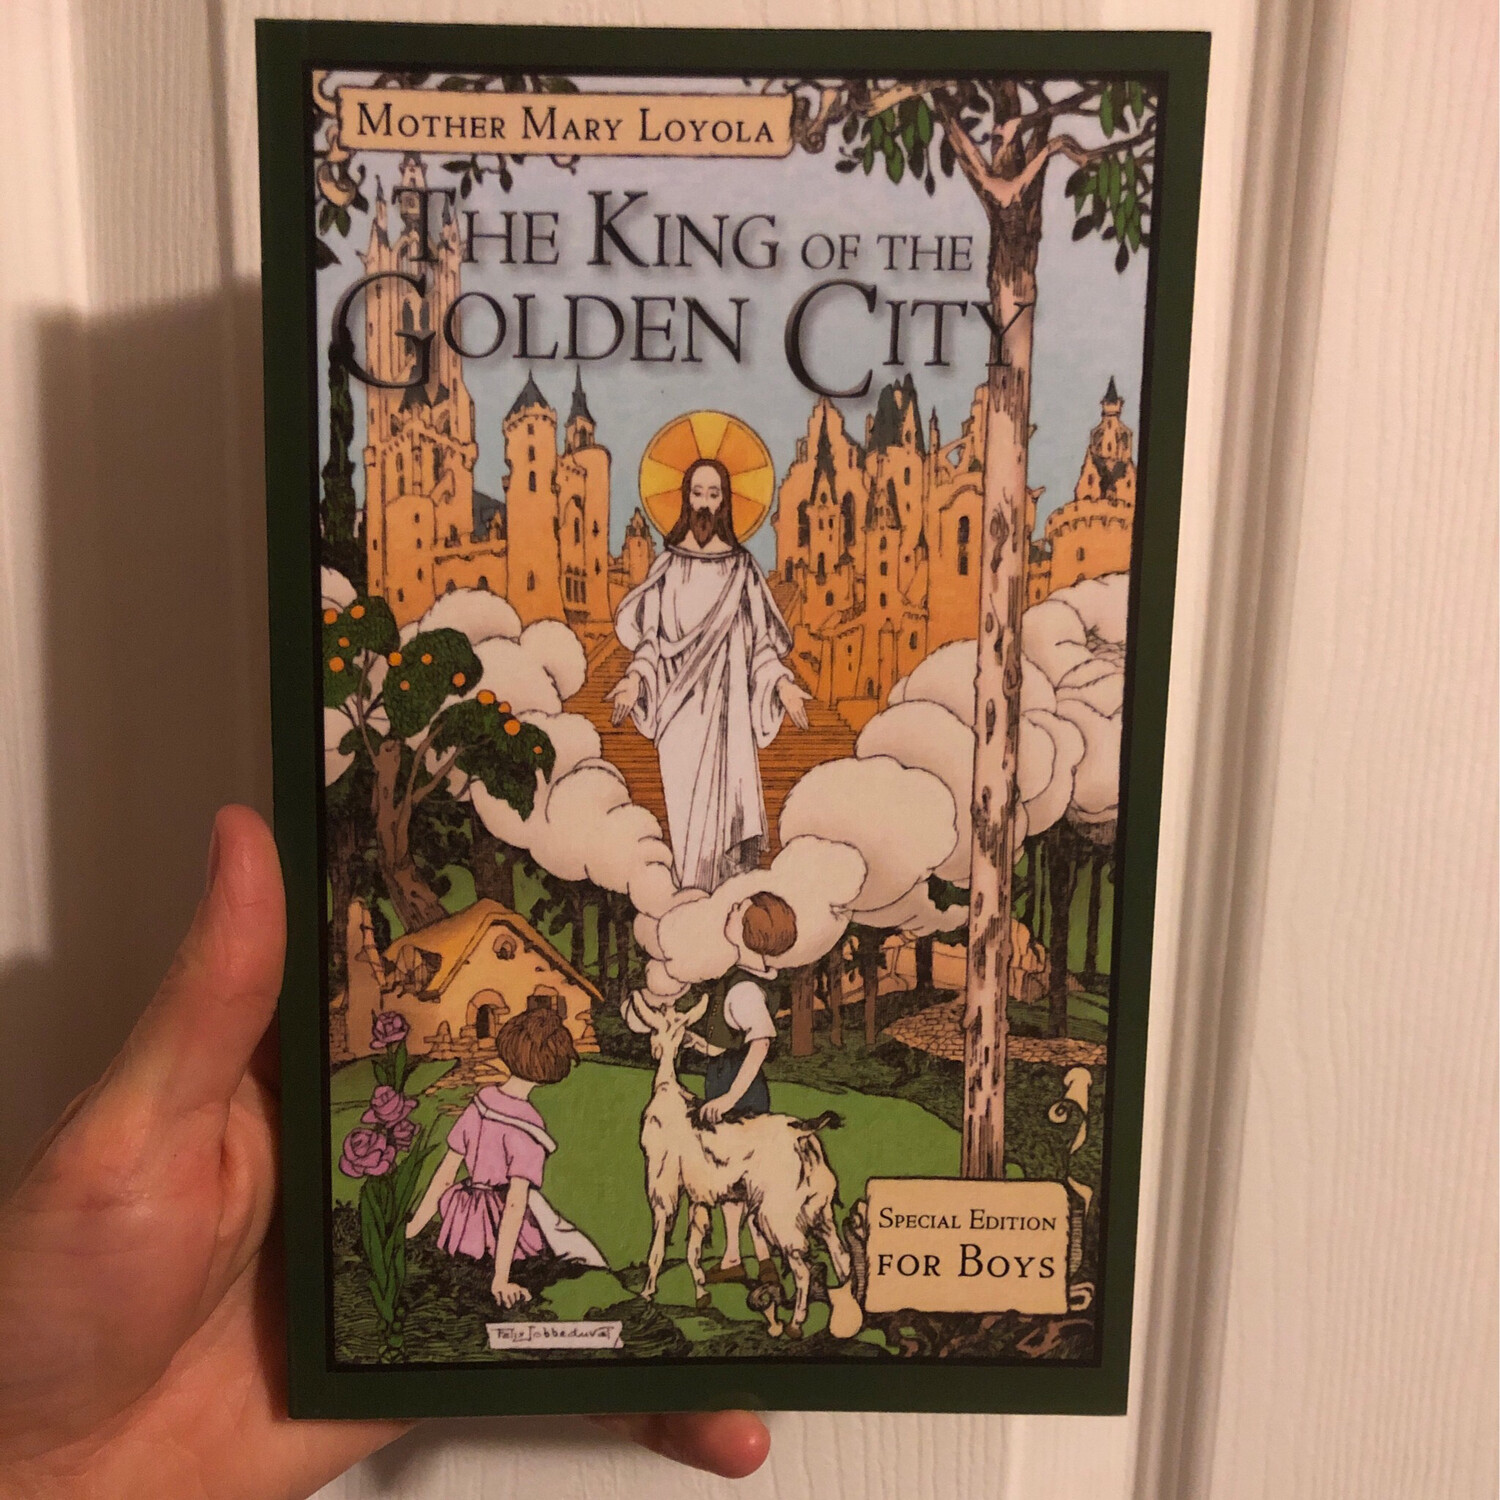 King of the Golden City: Special Edition for Boys by Mother Mary Loyola